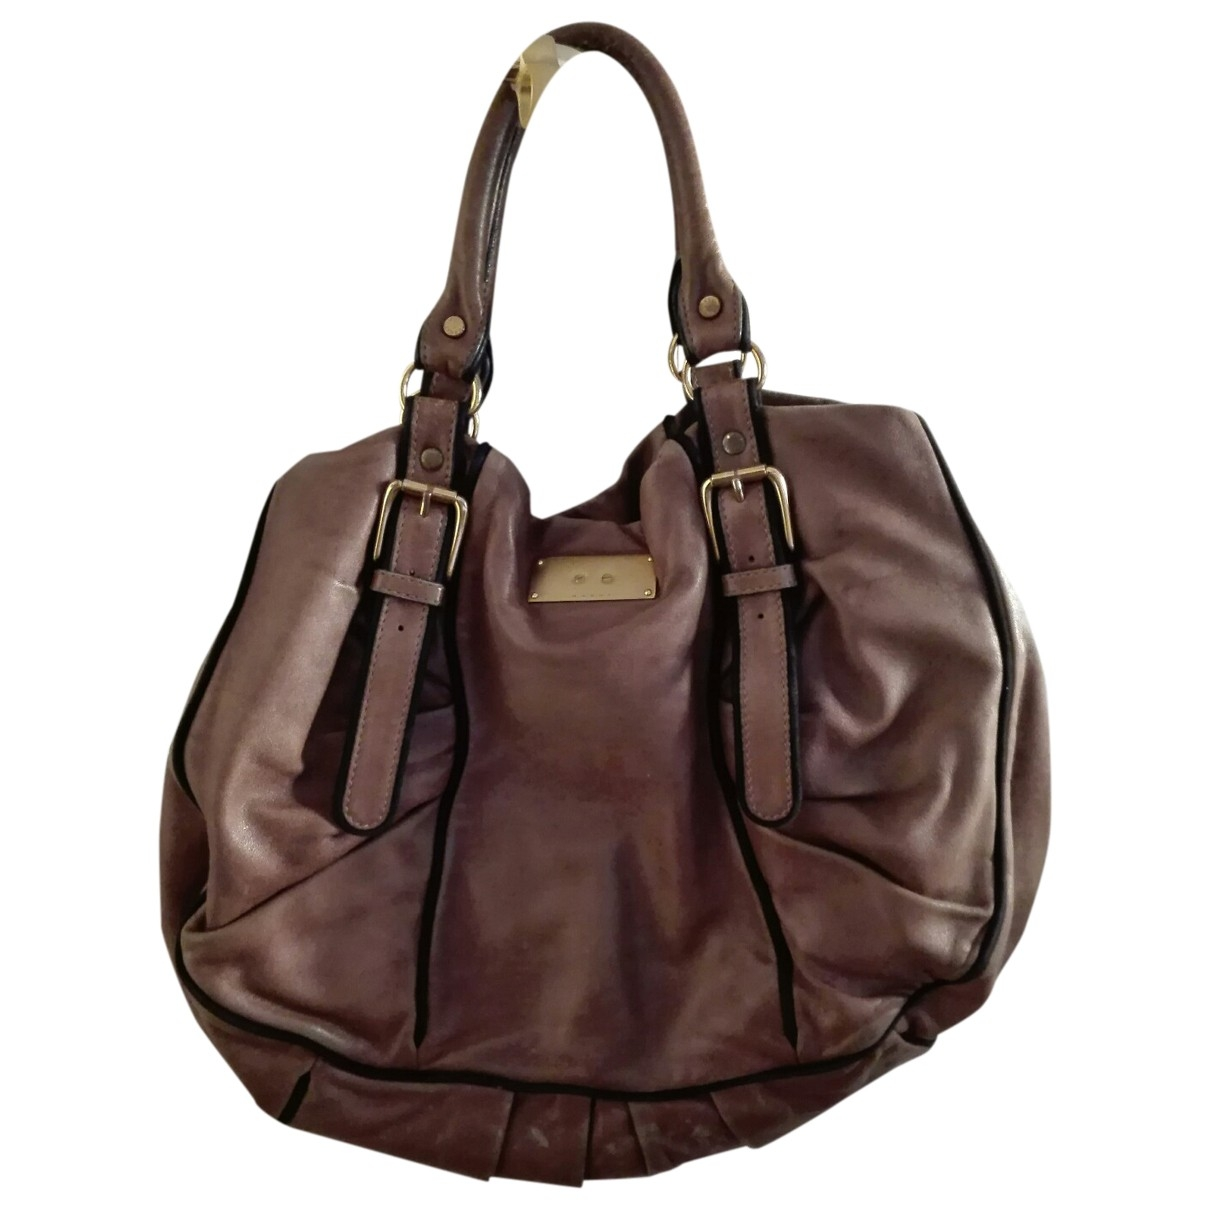 Marni \N Brown Leather handbag for Women \N